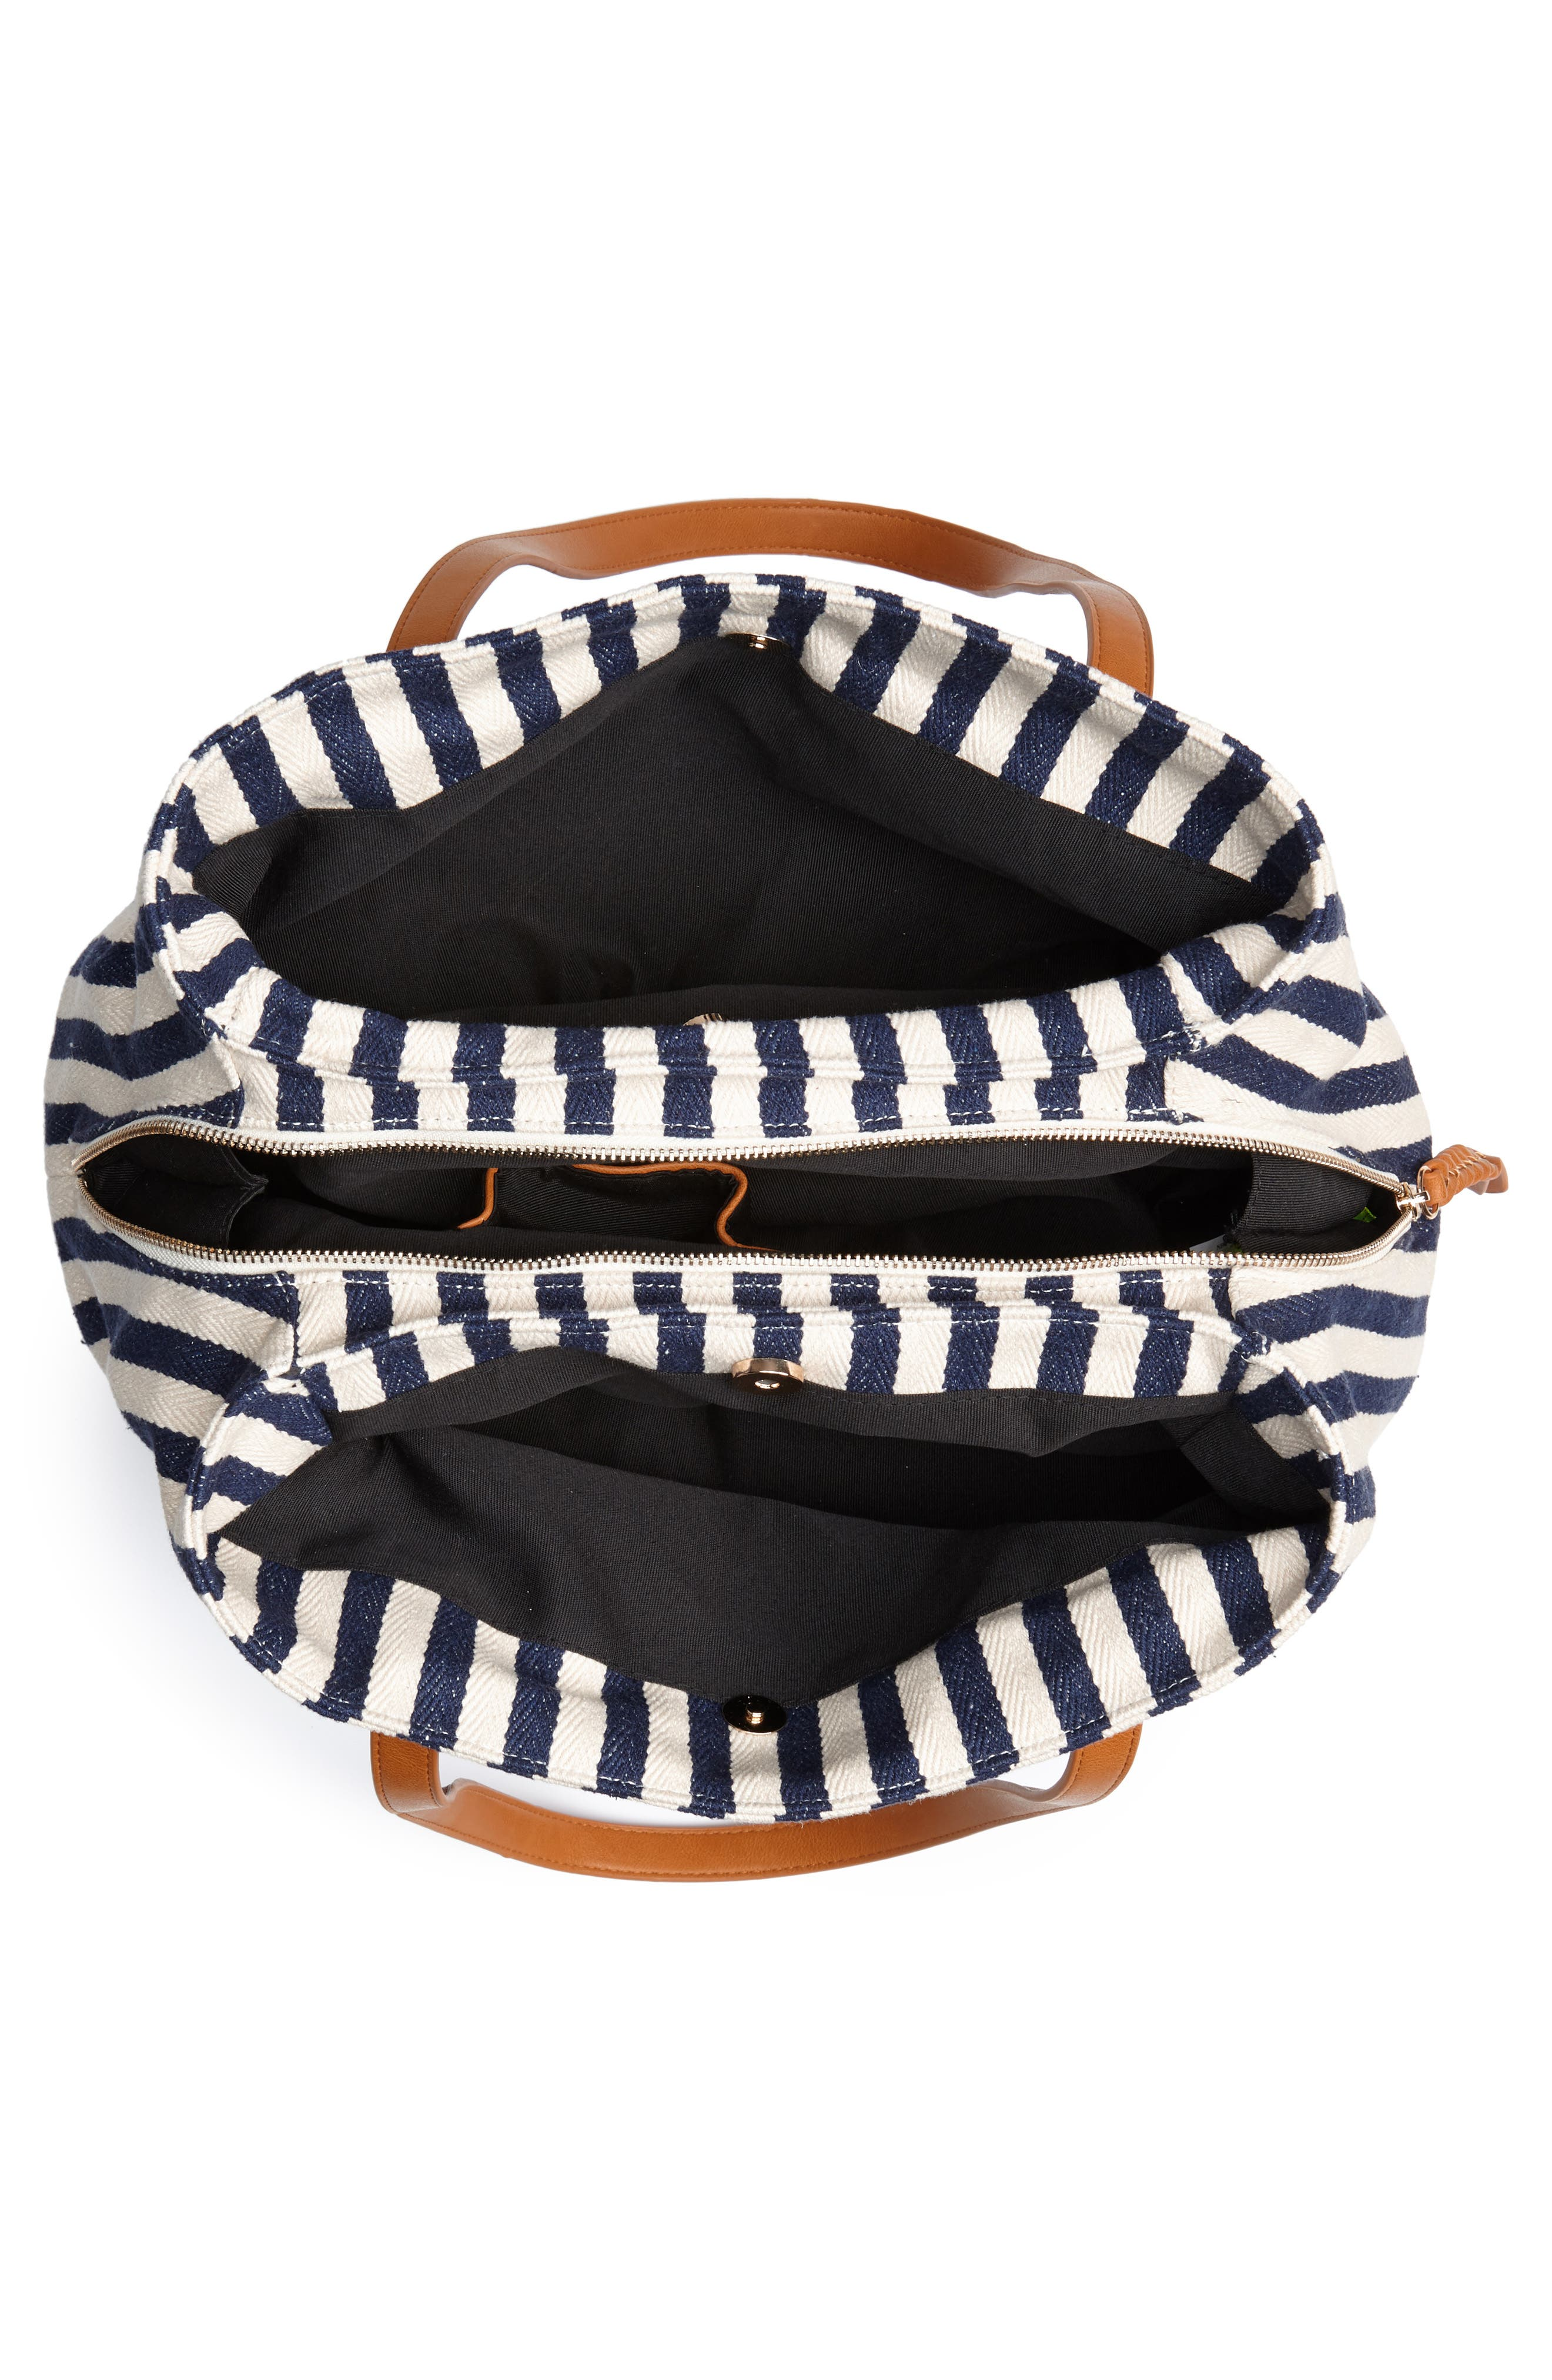 STREET LEVEL, Faux Leather Trim Weekend Bag with Shoe Base, Alternate thumbnail 5, color, 400